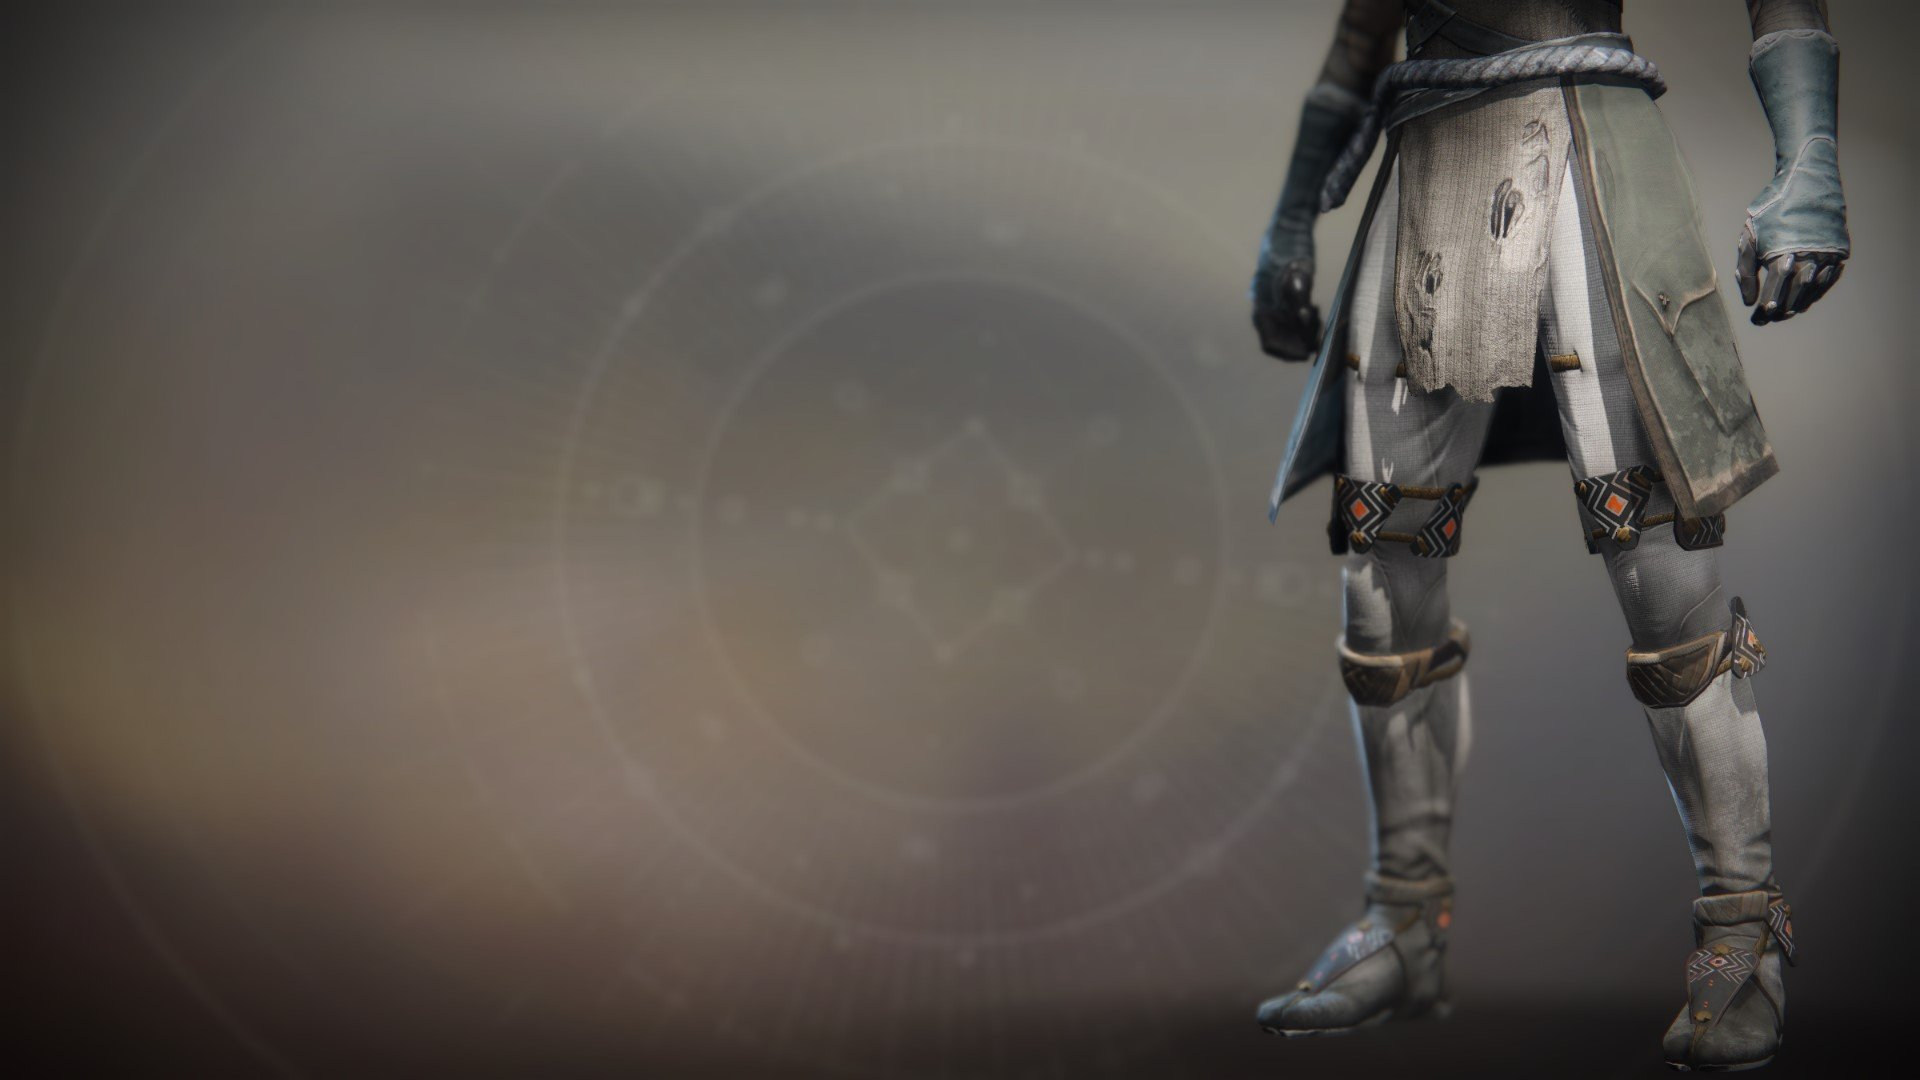 An in-game render of the Lunafaction Boots.